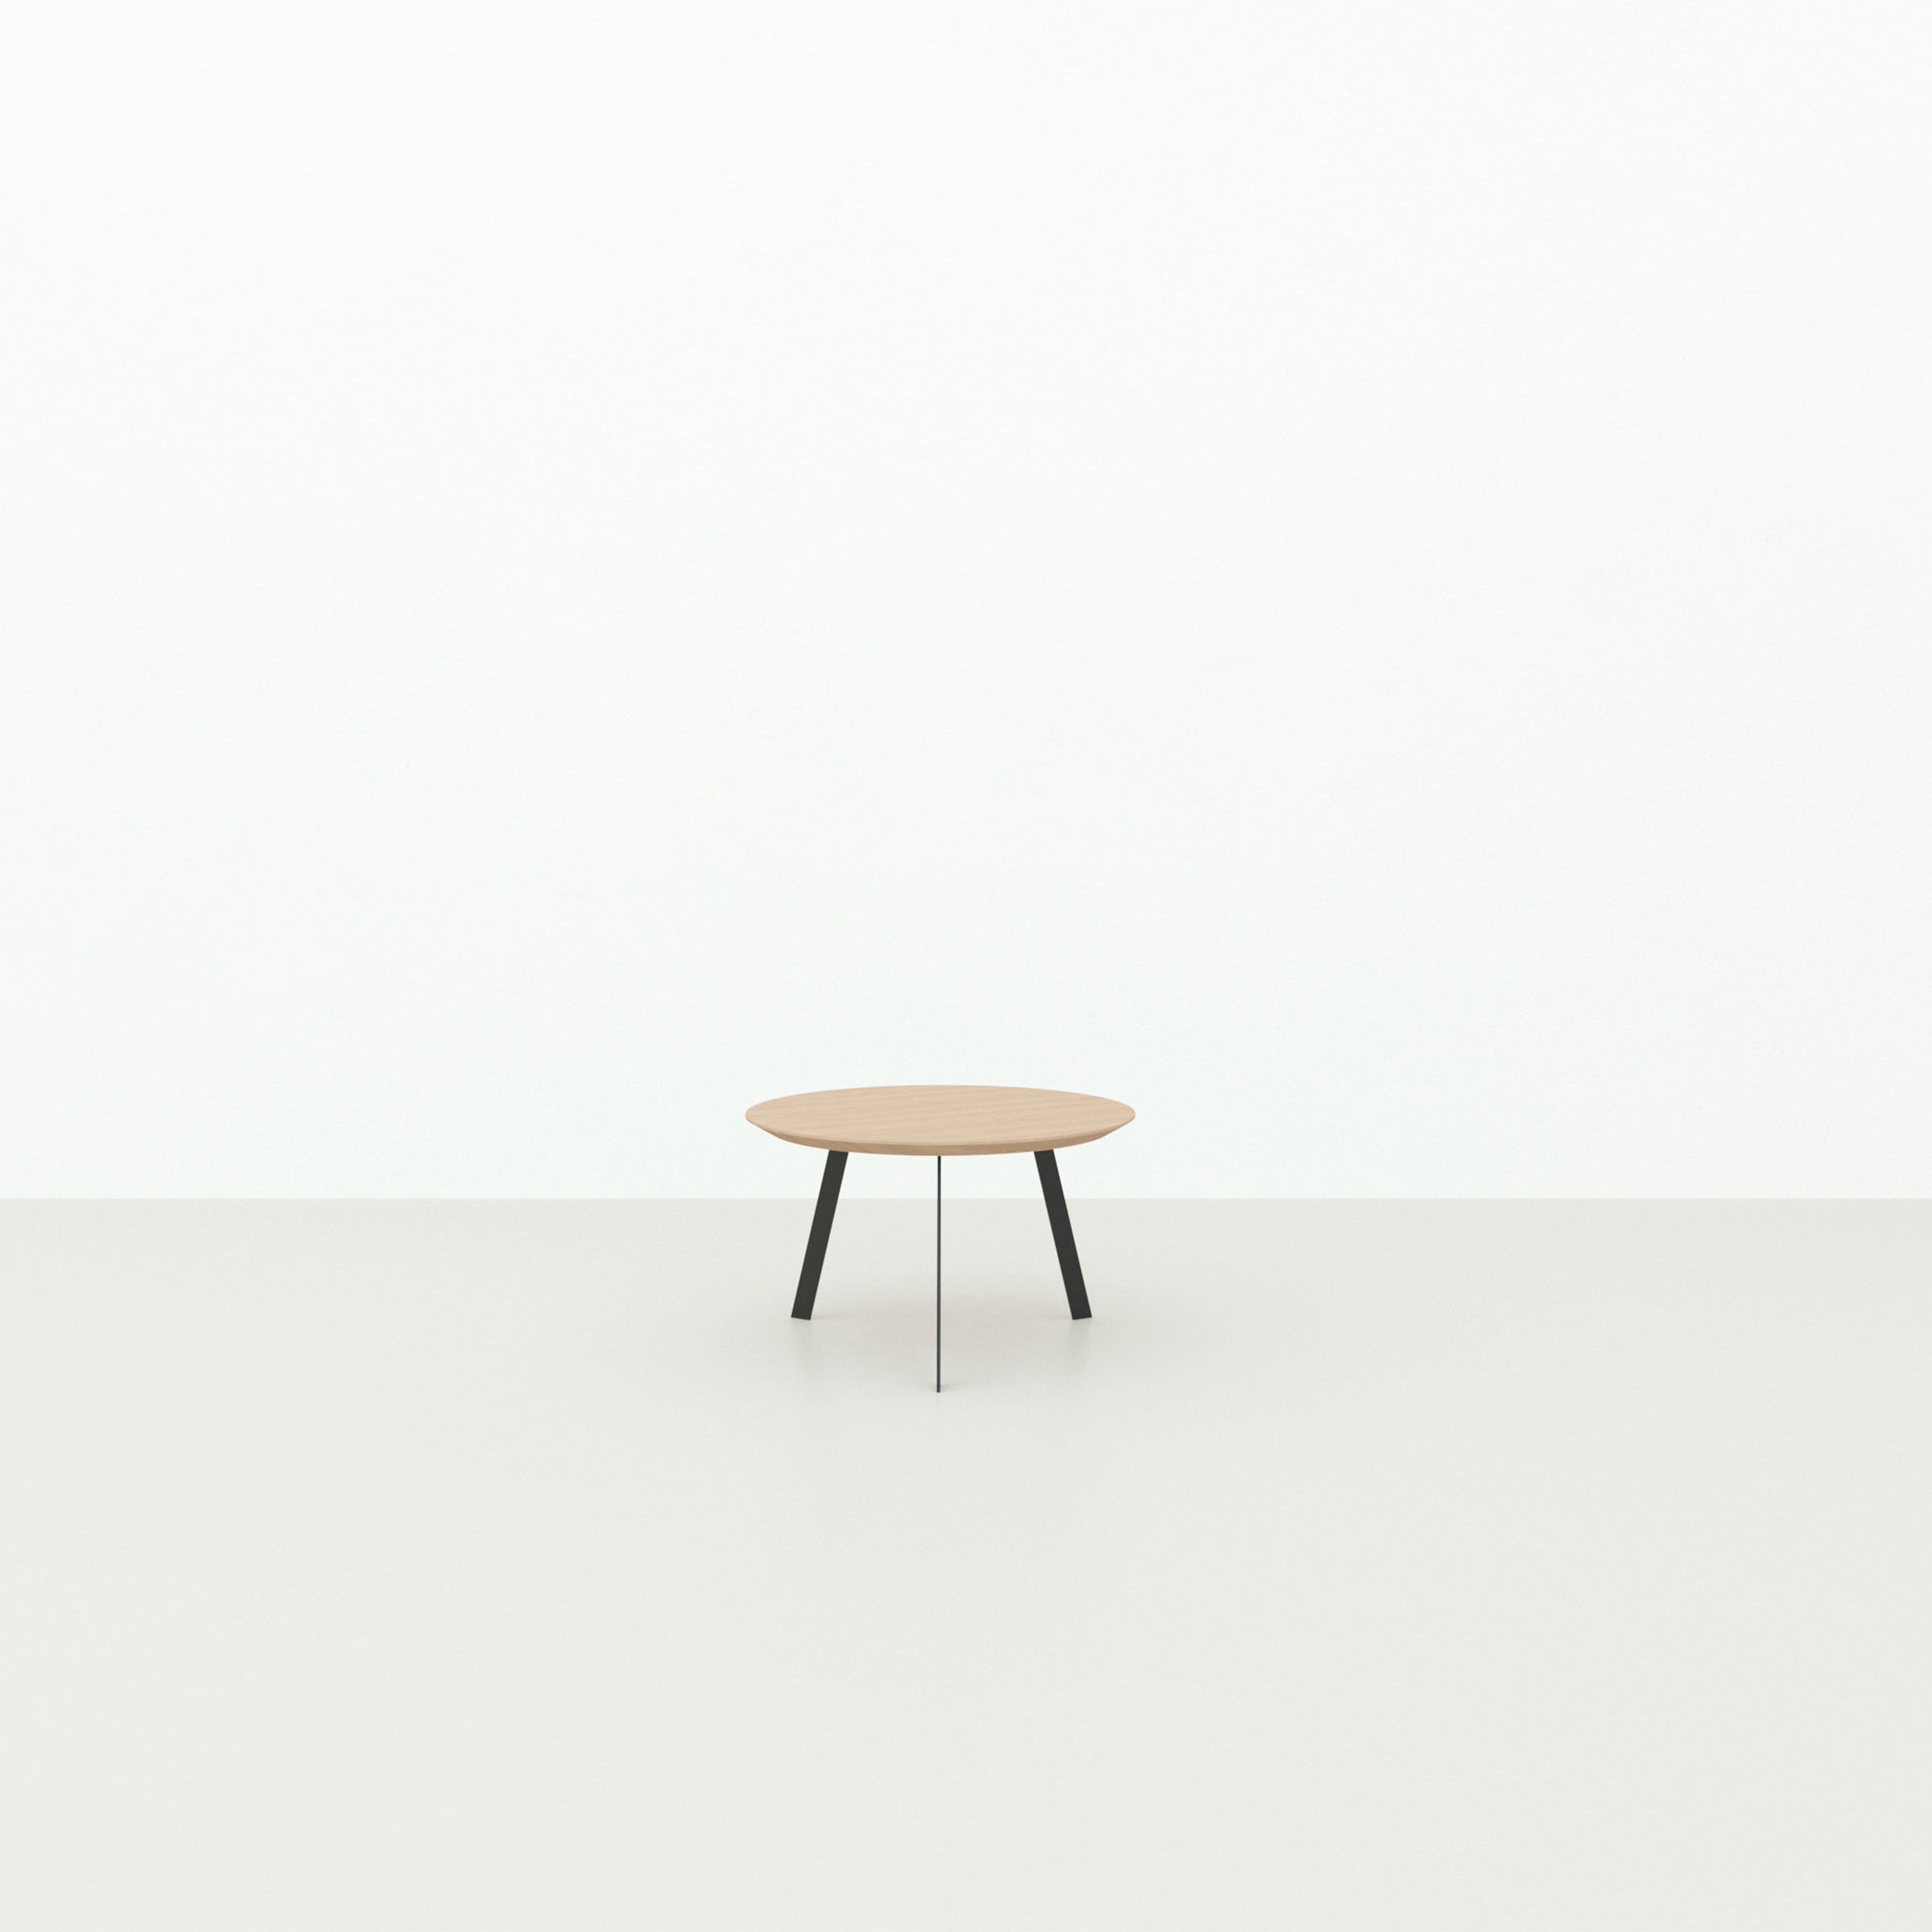 Design salontafel | New Co Coffee Table 1200 Rectangular Black | Oak hardwax oil natural light 3041 | Studio HENK |